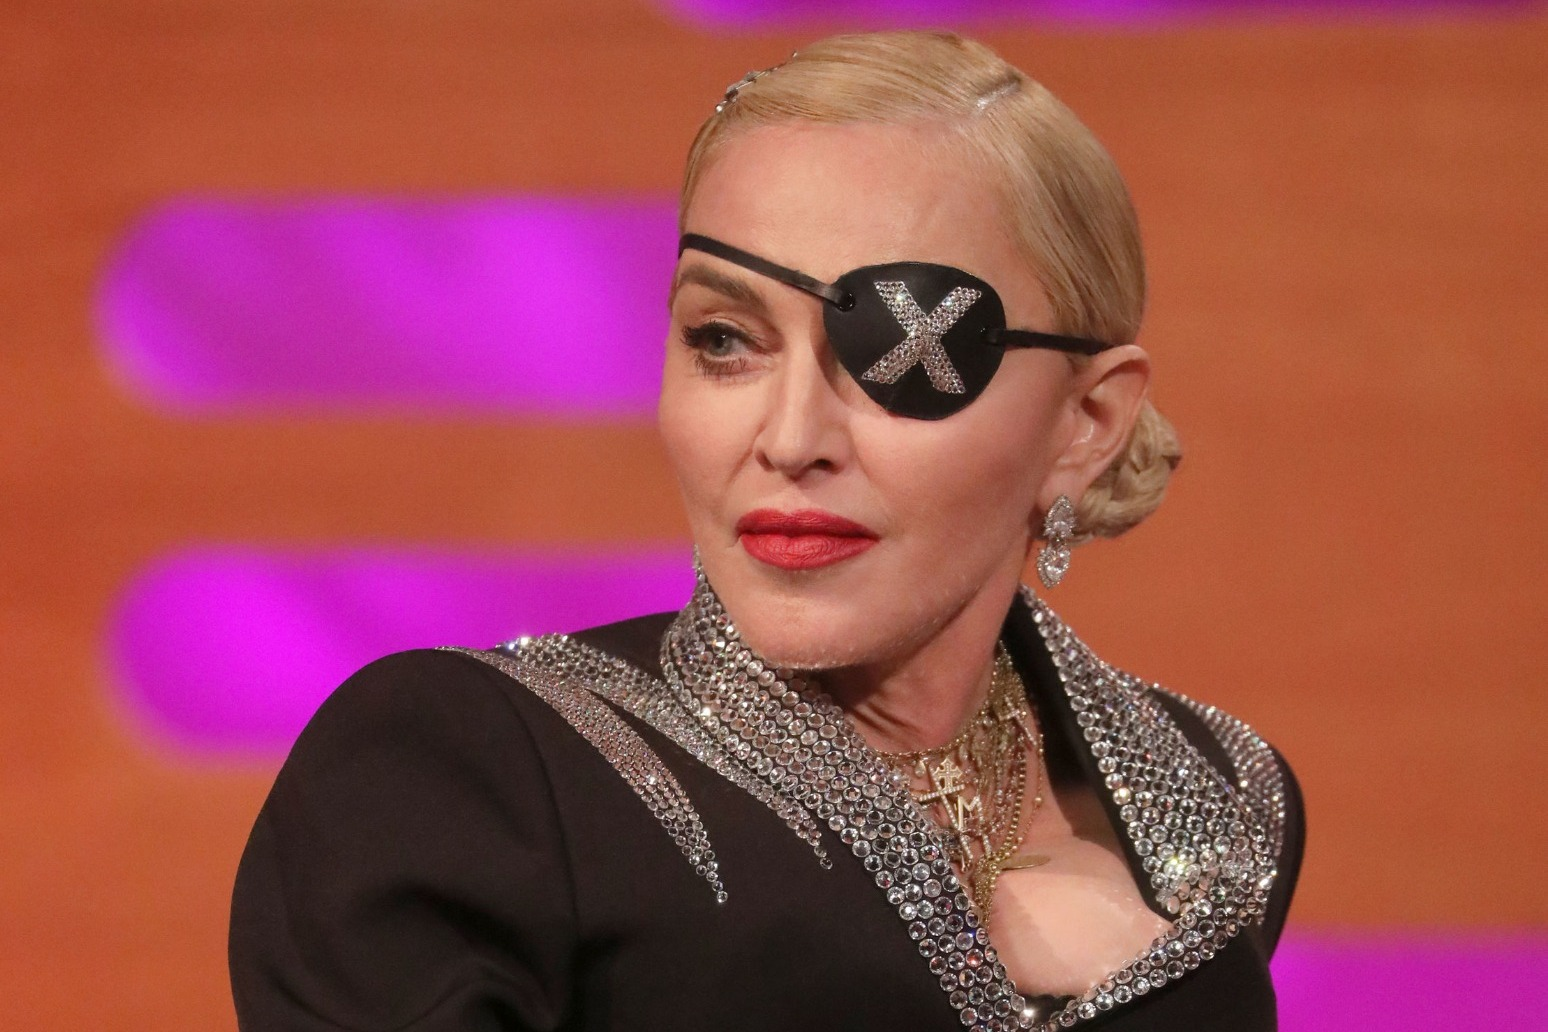 MADONNA CANCELS TOUR DATES ON MEDICAL ADVICE